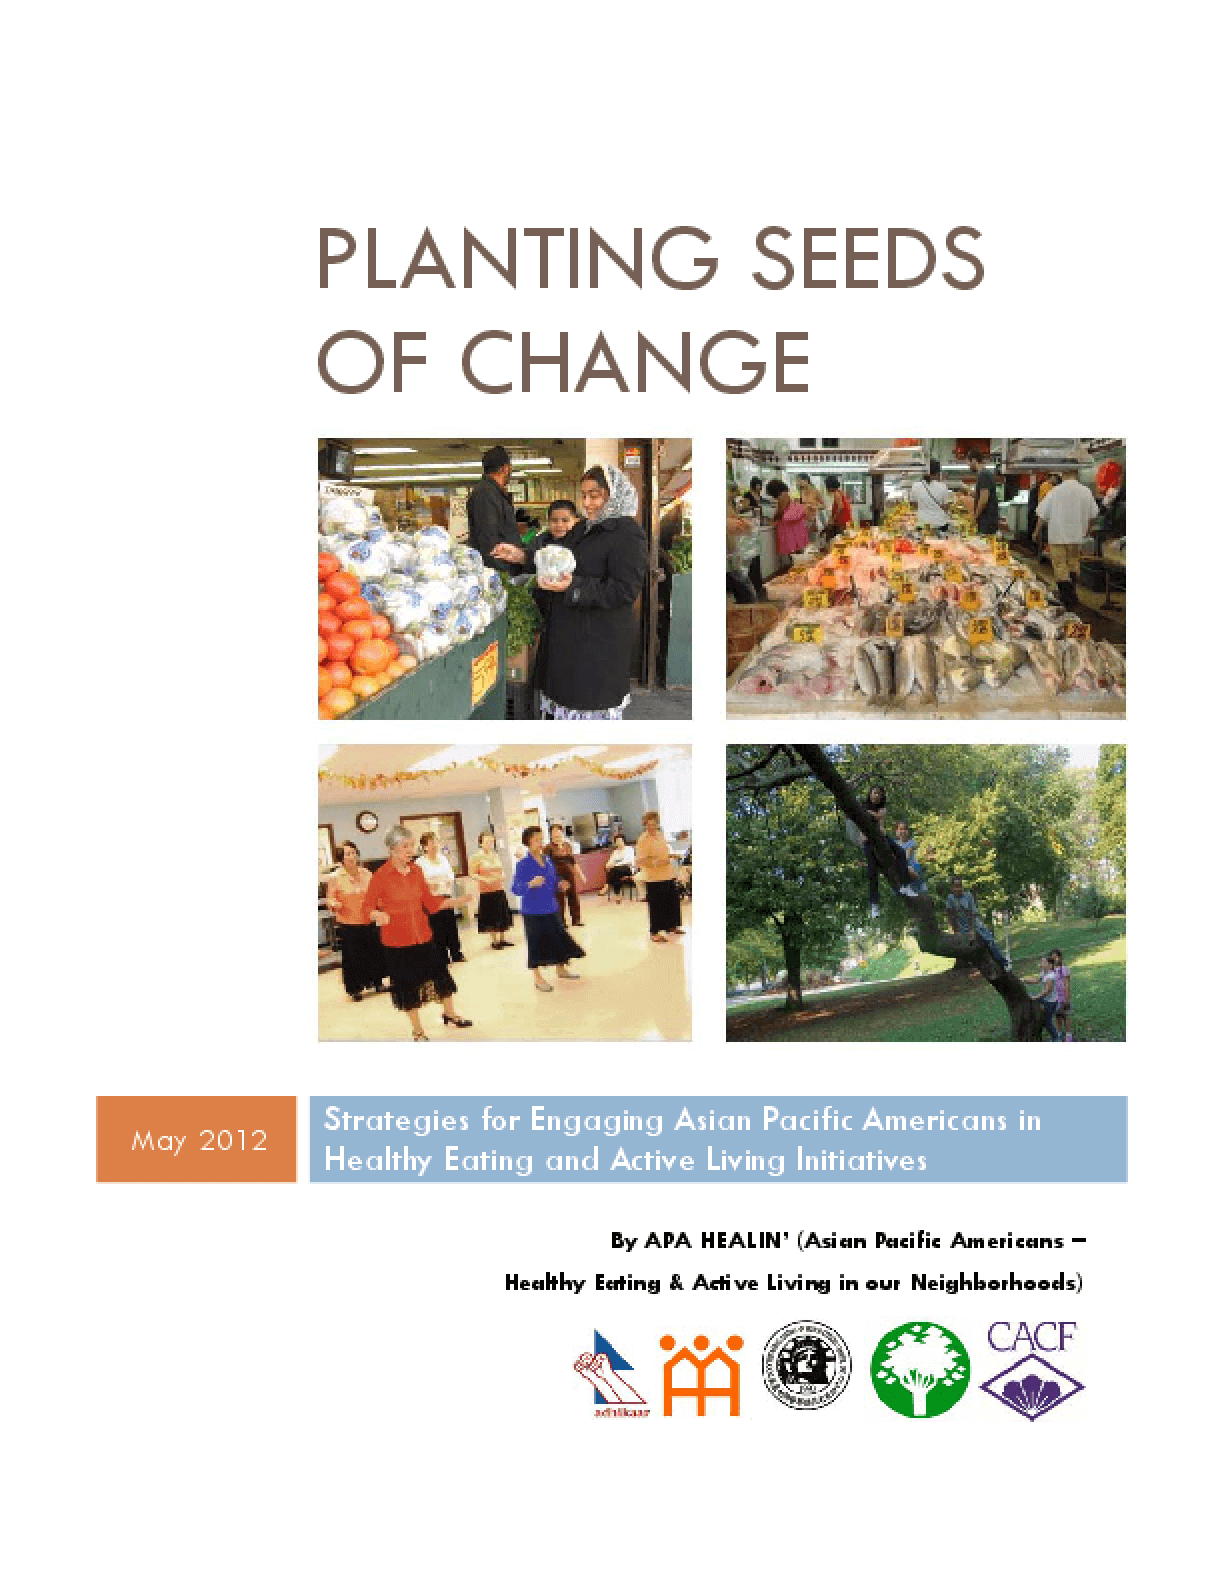 Planting Seeds of Change: Strategies for Engaging Asian Pacific Americans in Healthy Eating and Active Living Initiatives